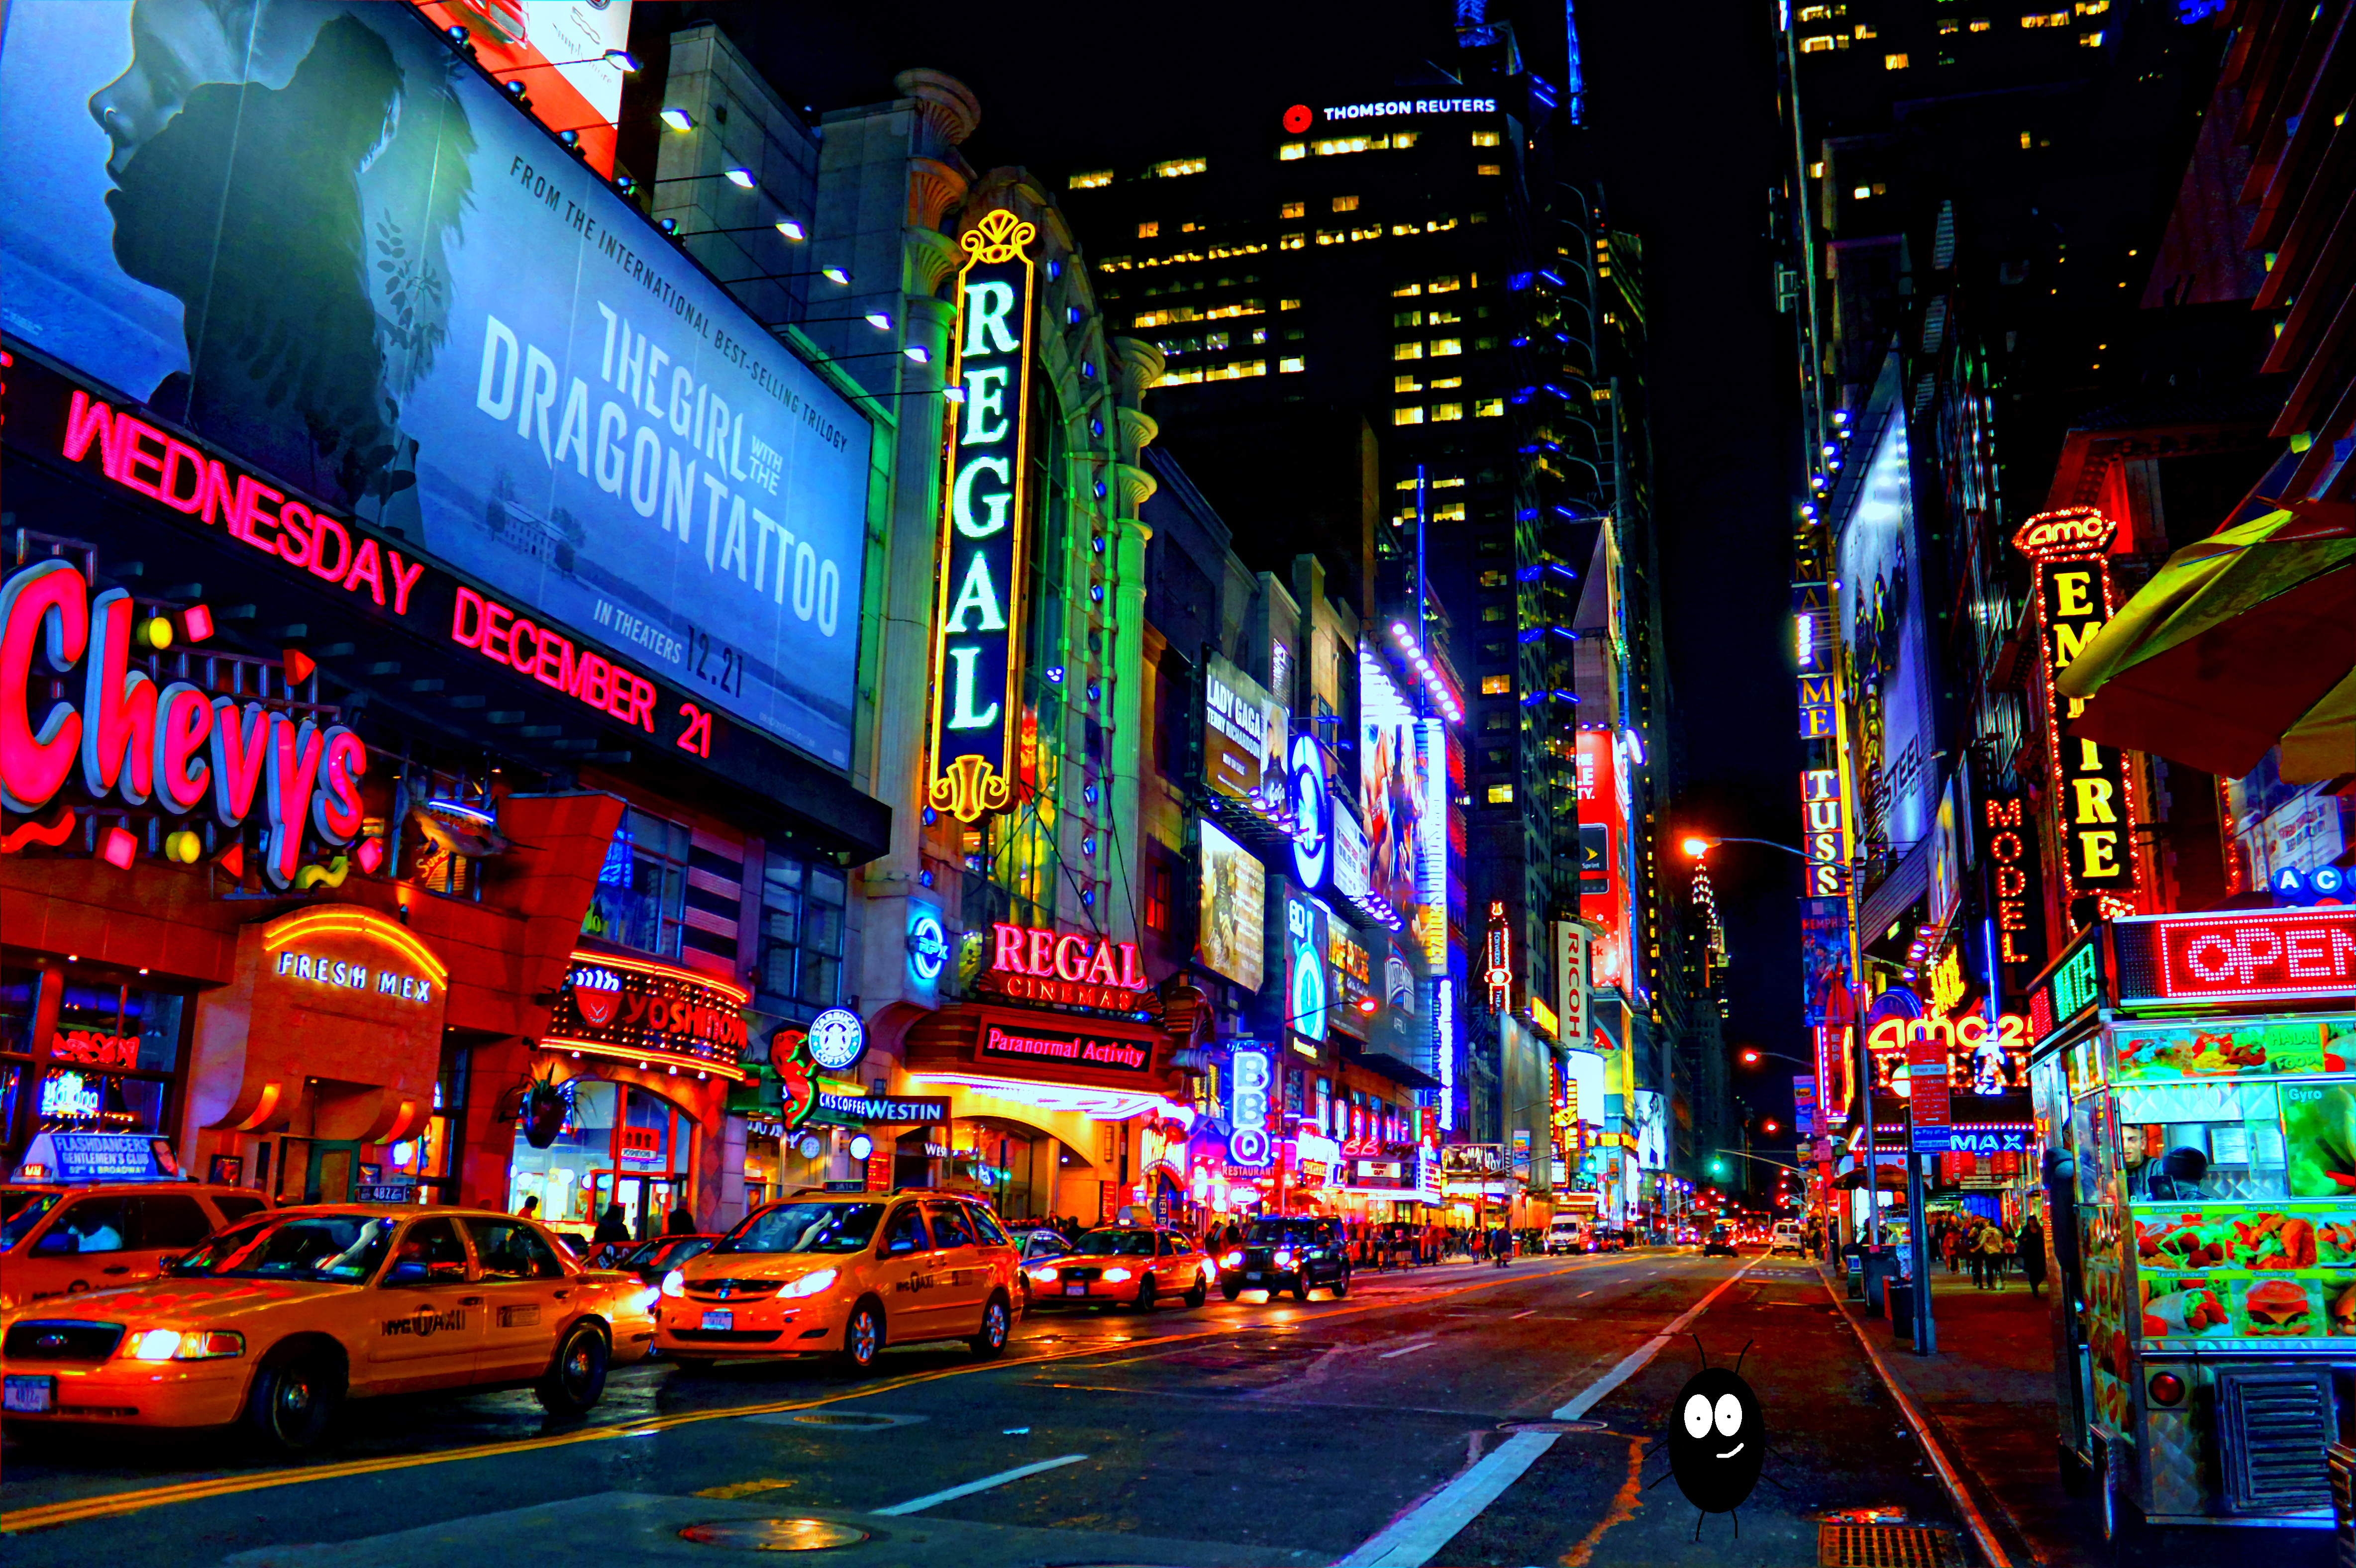 Buggy and glizy 42nd street by thebuggynater on deviantart for Places to see in nyc at night